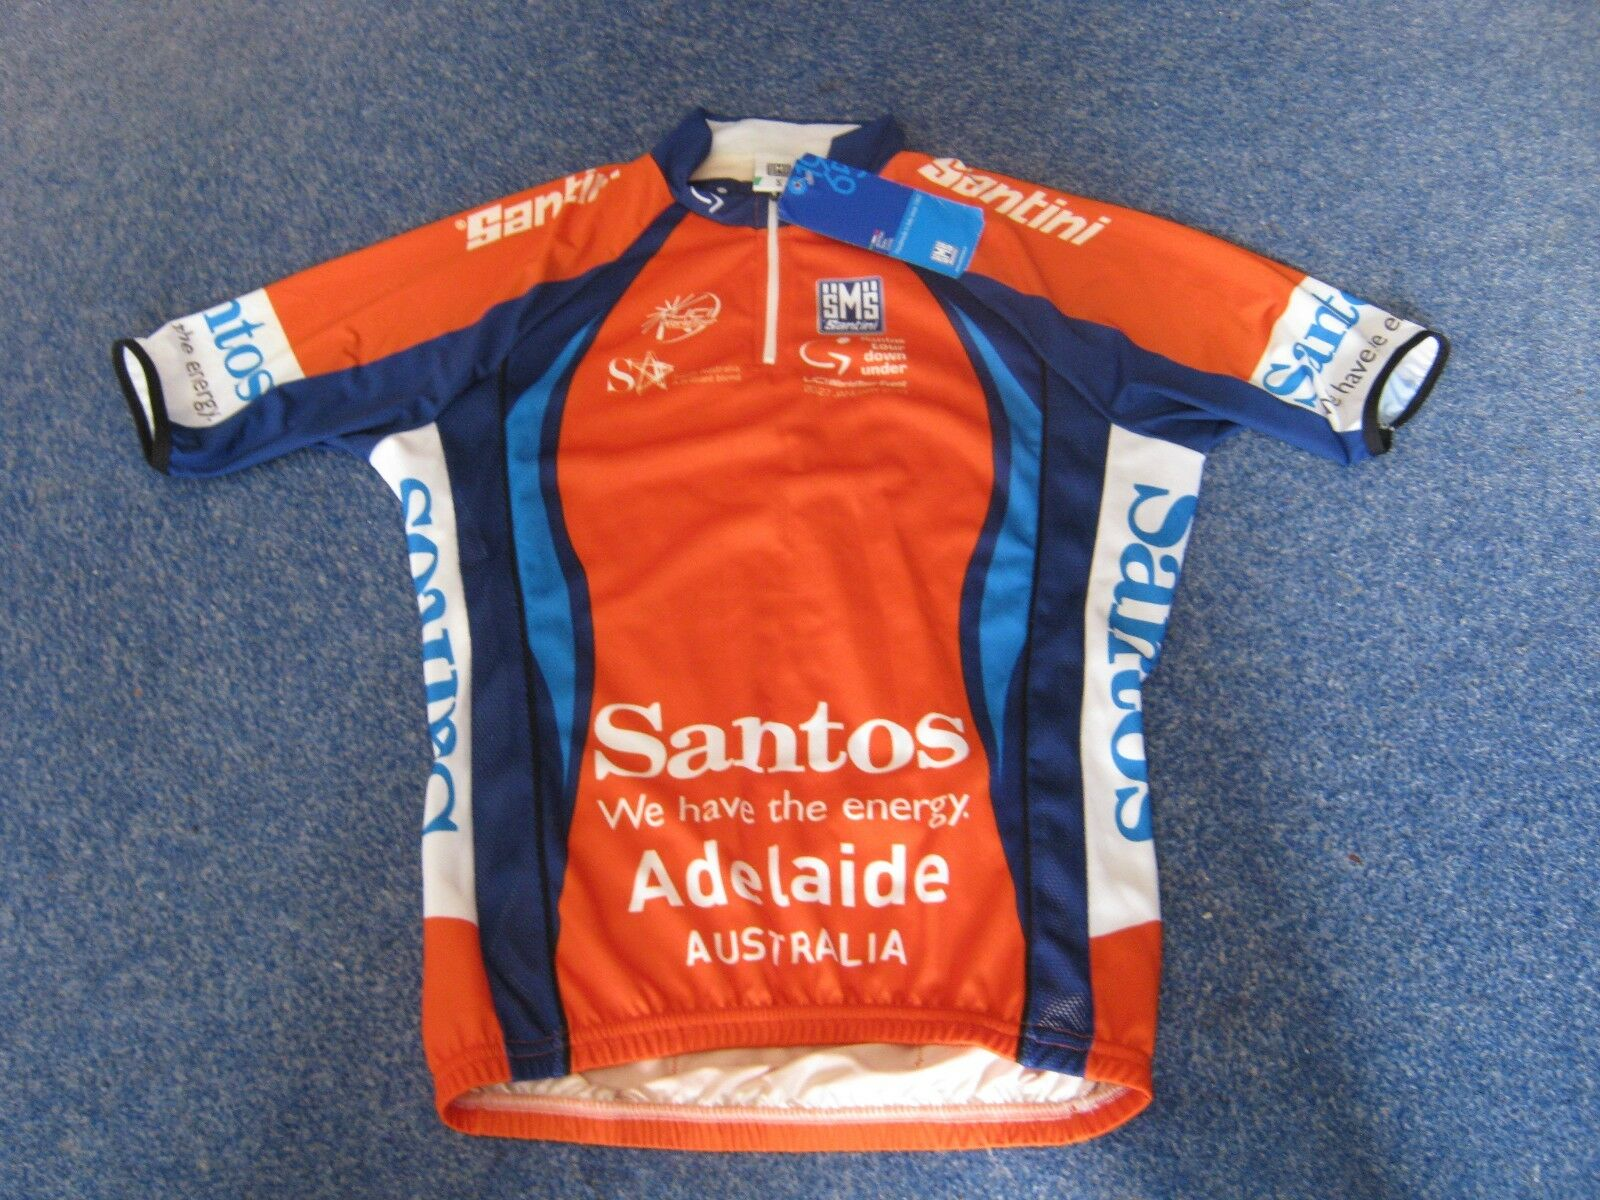 SANTOS TOUR DOWN UNDER SANTINI 2013 LEADERS Orange CYCLING JERSEY  BNWT